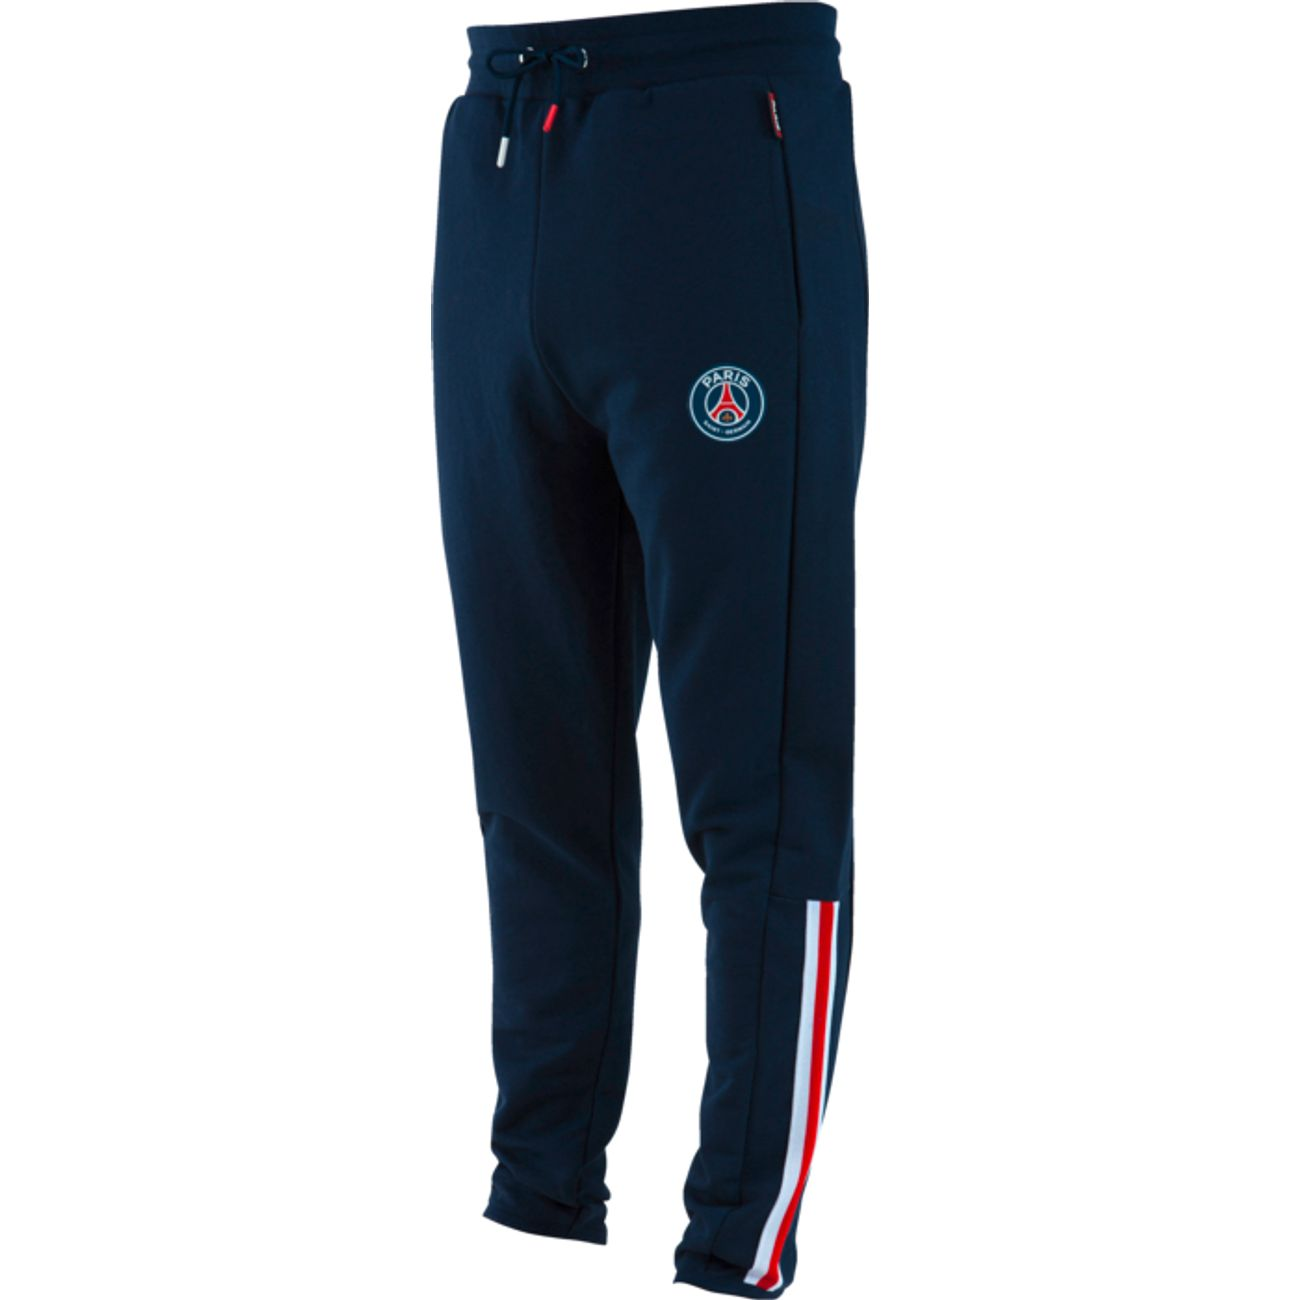 WEEPLAY PSG PANT SWEAT JR 19